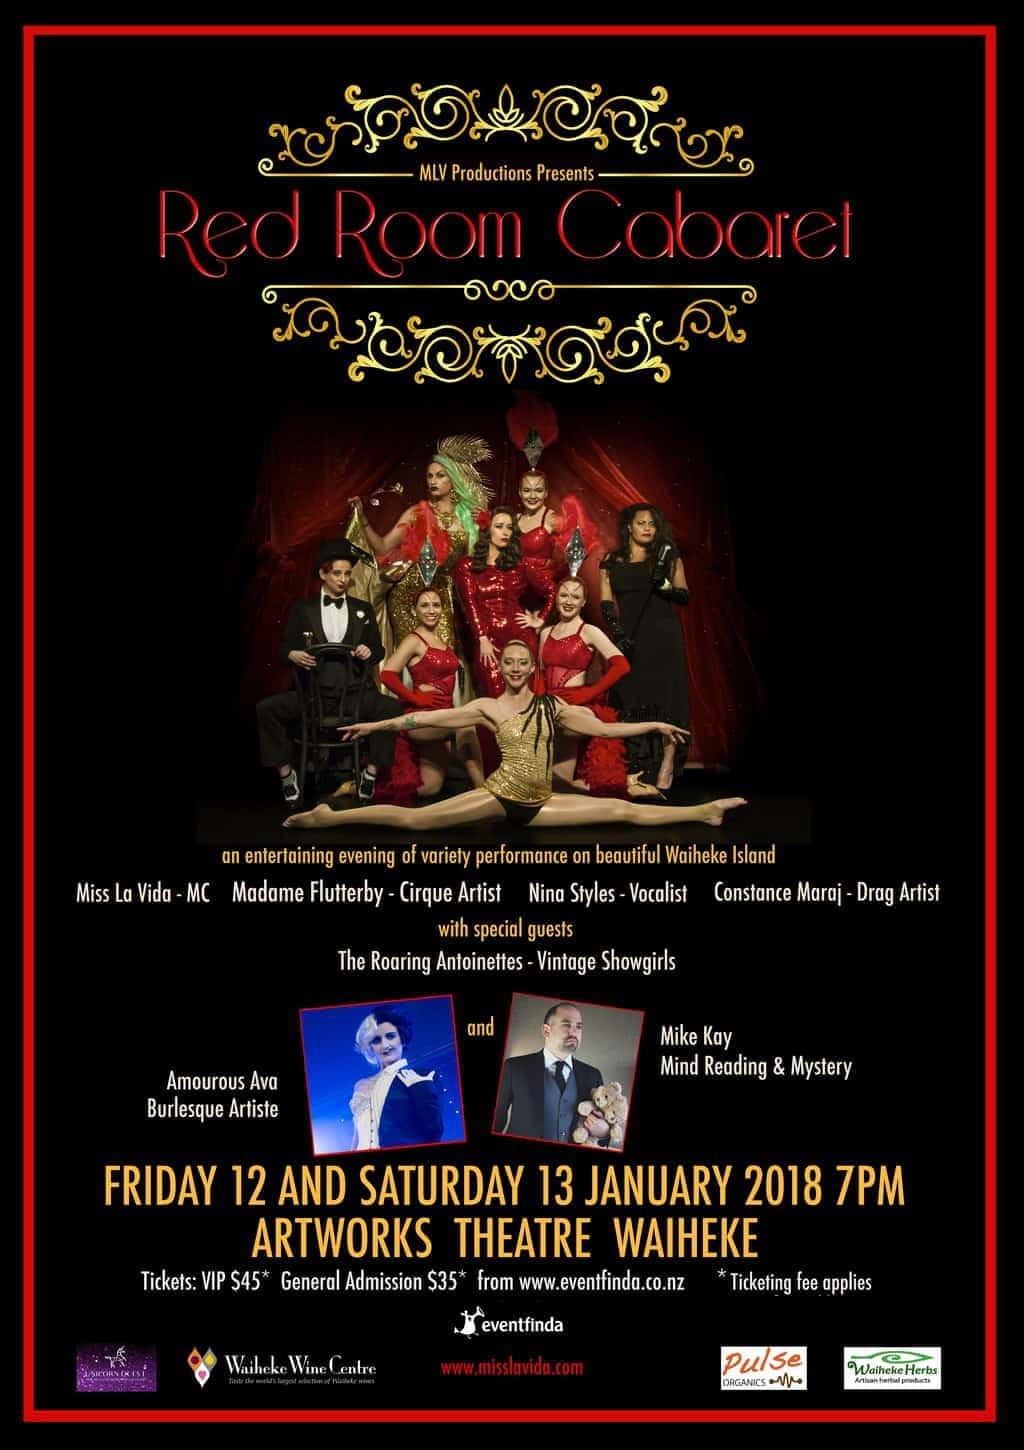 The Red Room Cabaret, January 2018